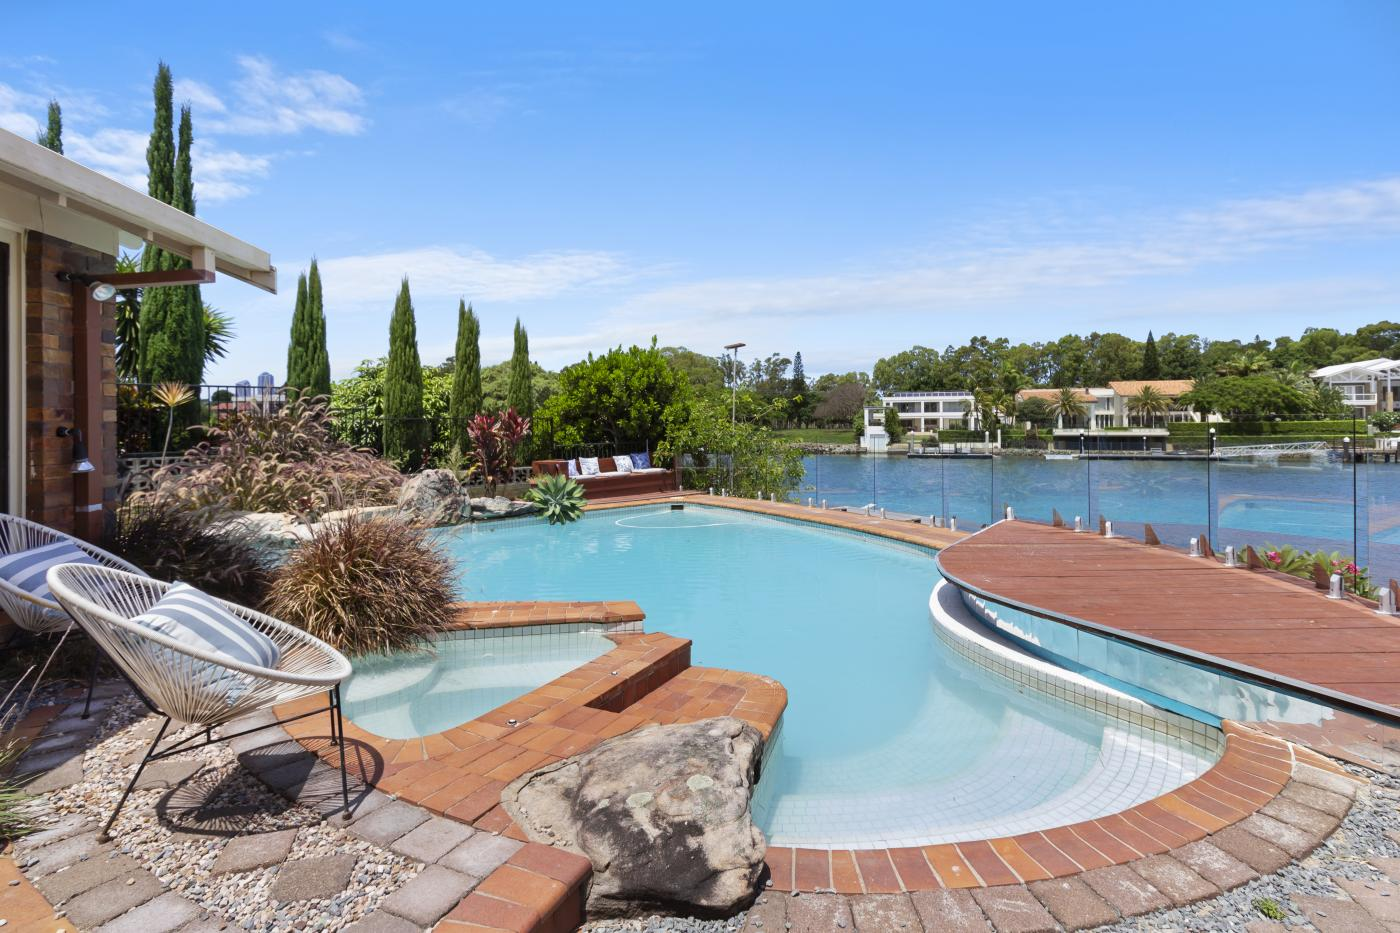 10 Donegal Crescent, Sorrento, Qld 4217 - M-Motion Real Estate Suzy Kirk.jpg